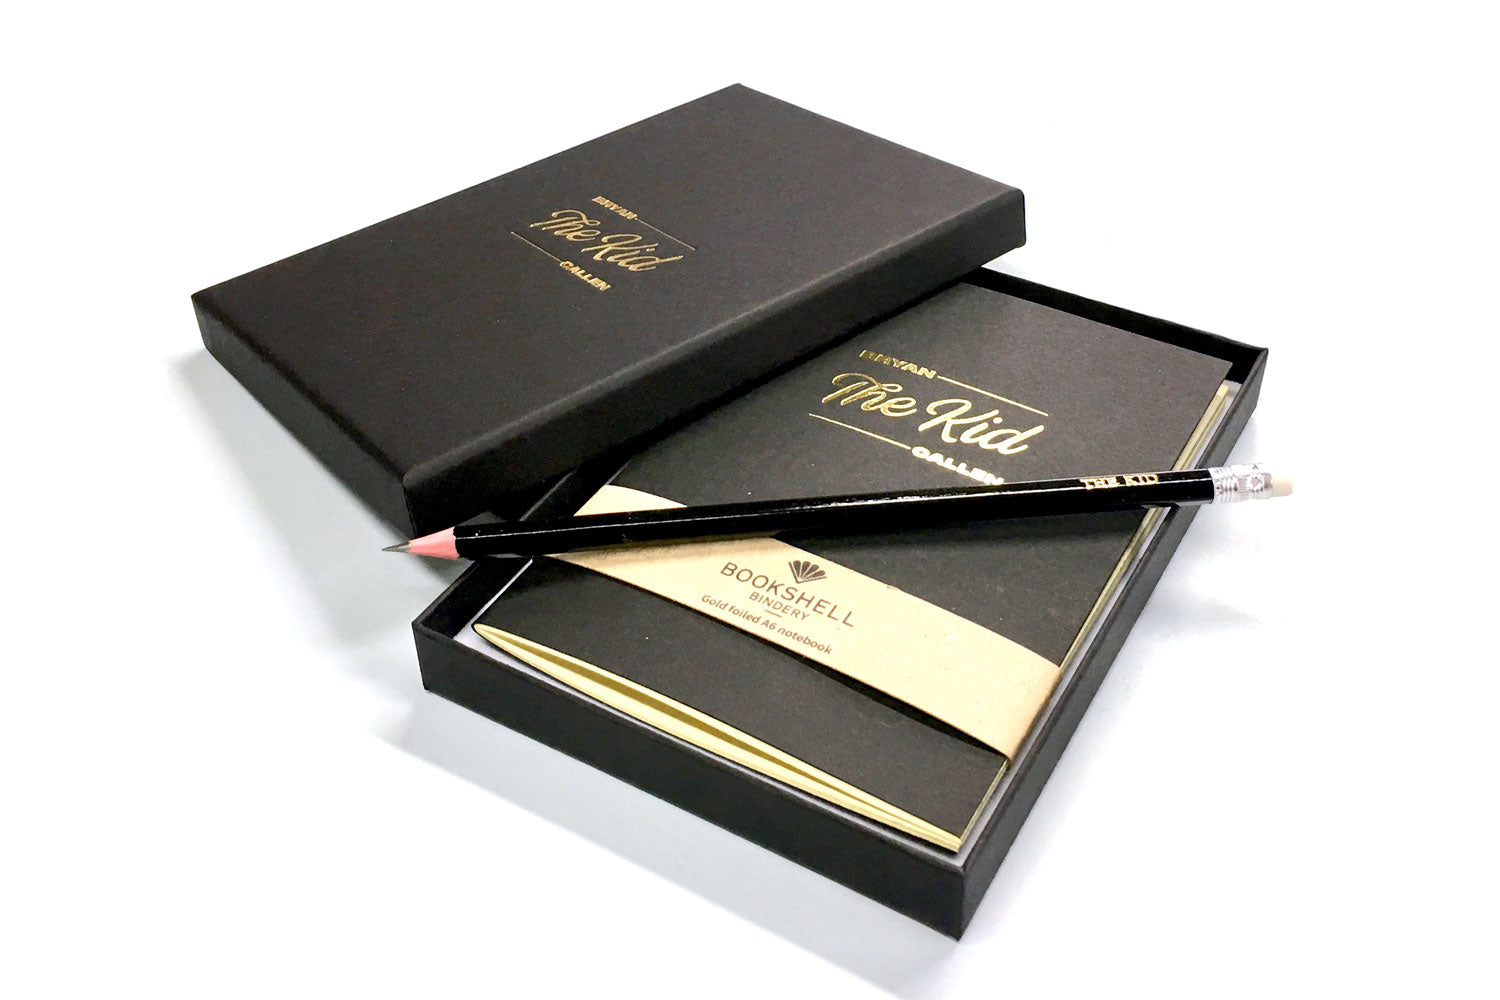 Personalised A6 notebook from Bookshell with beautiful gift box and pencil